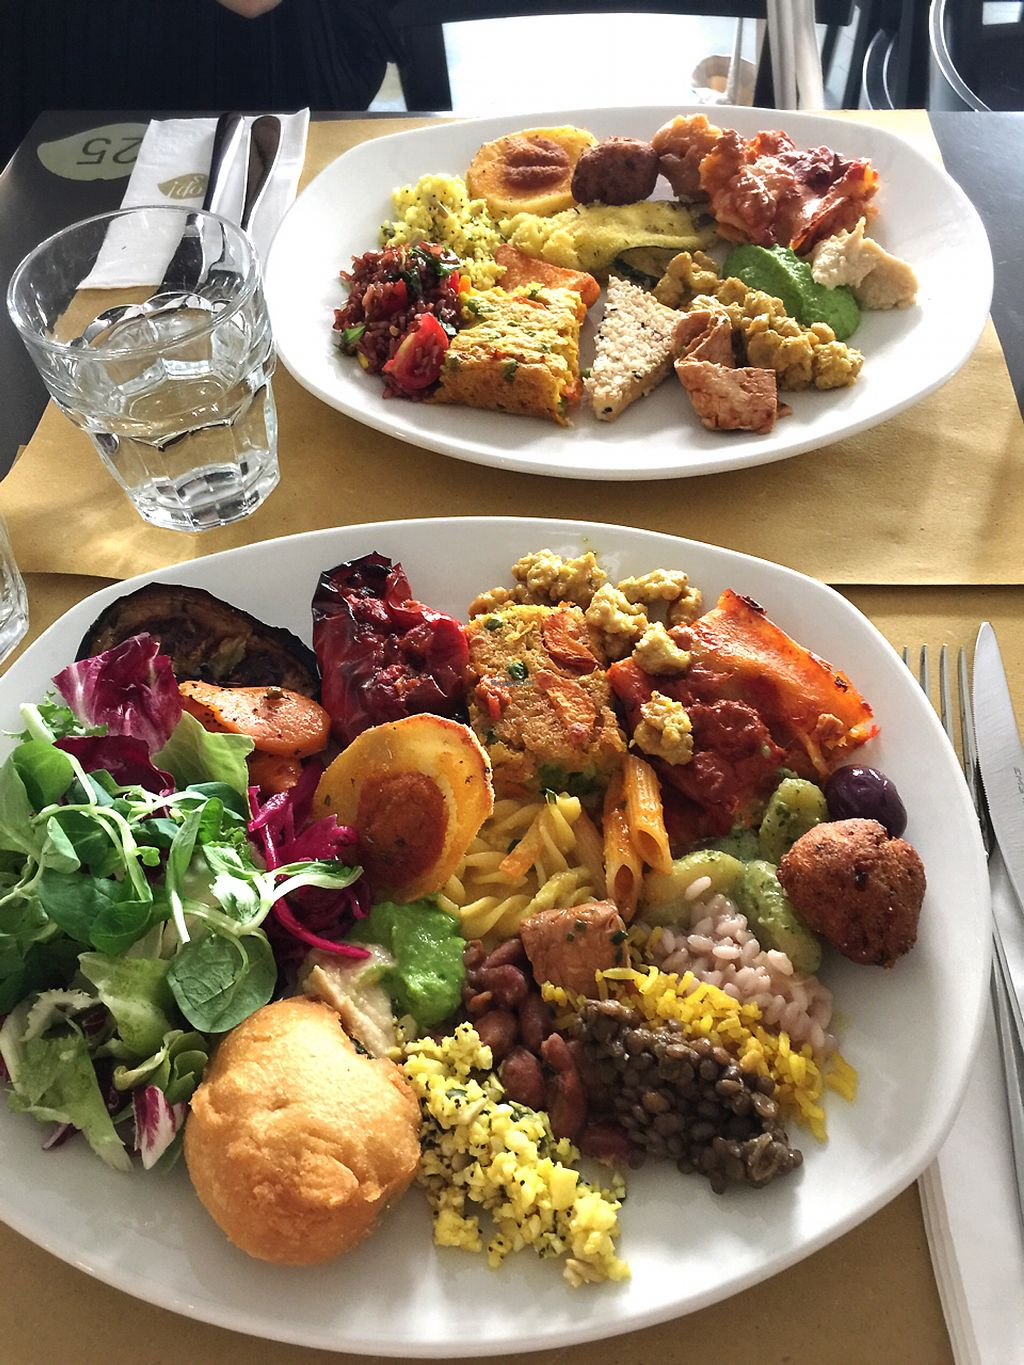 """Photo of Ops Cucina Mediterranea  by <a href=""""/members/profile/AbbyKuo"""">AbbyKuo</a> <br/>23€in this picture <br/> July 19, 2017  - <a href='/contact/abuse/image/33562/282155'>Report</a>"""